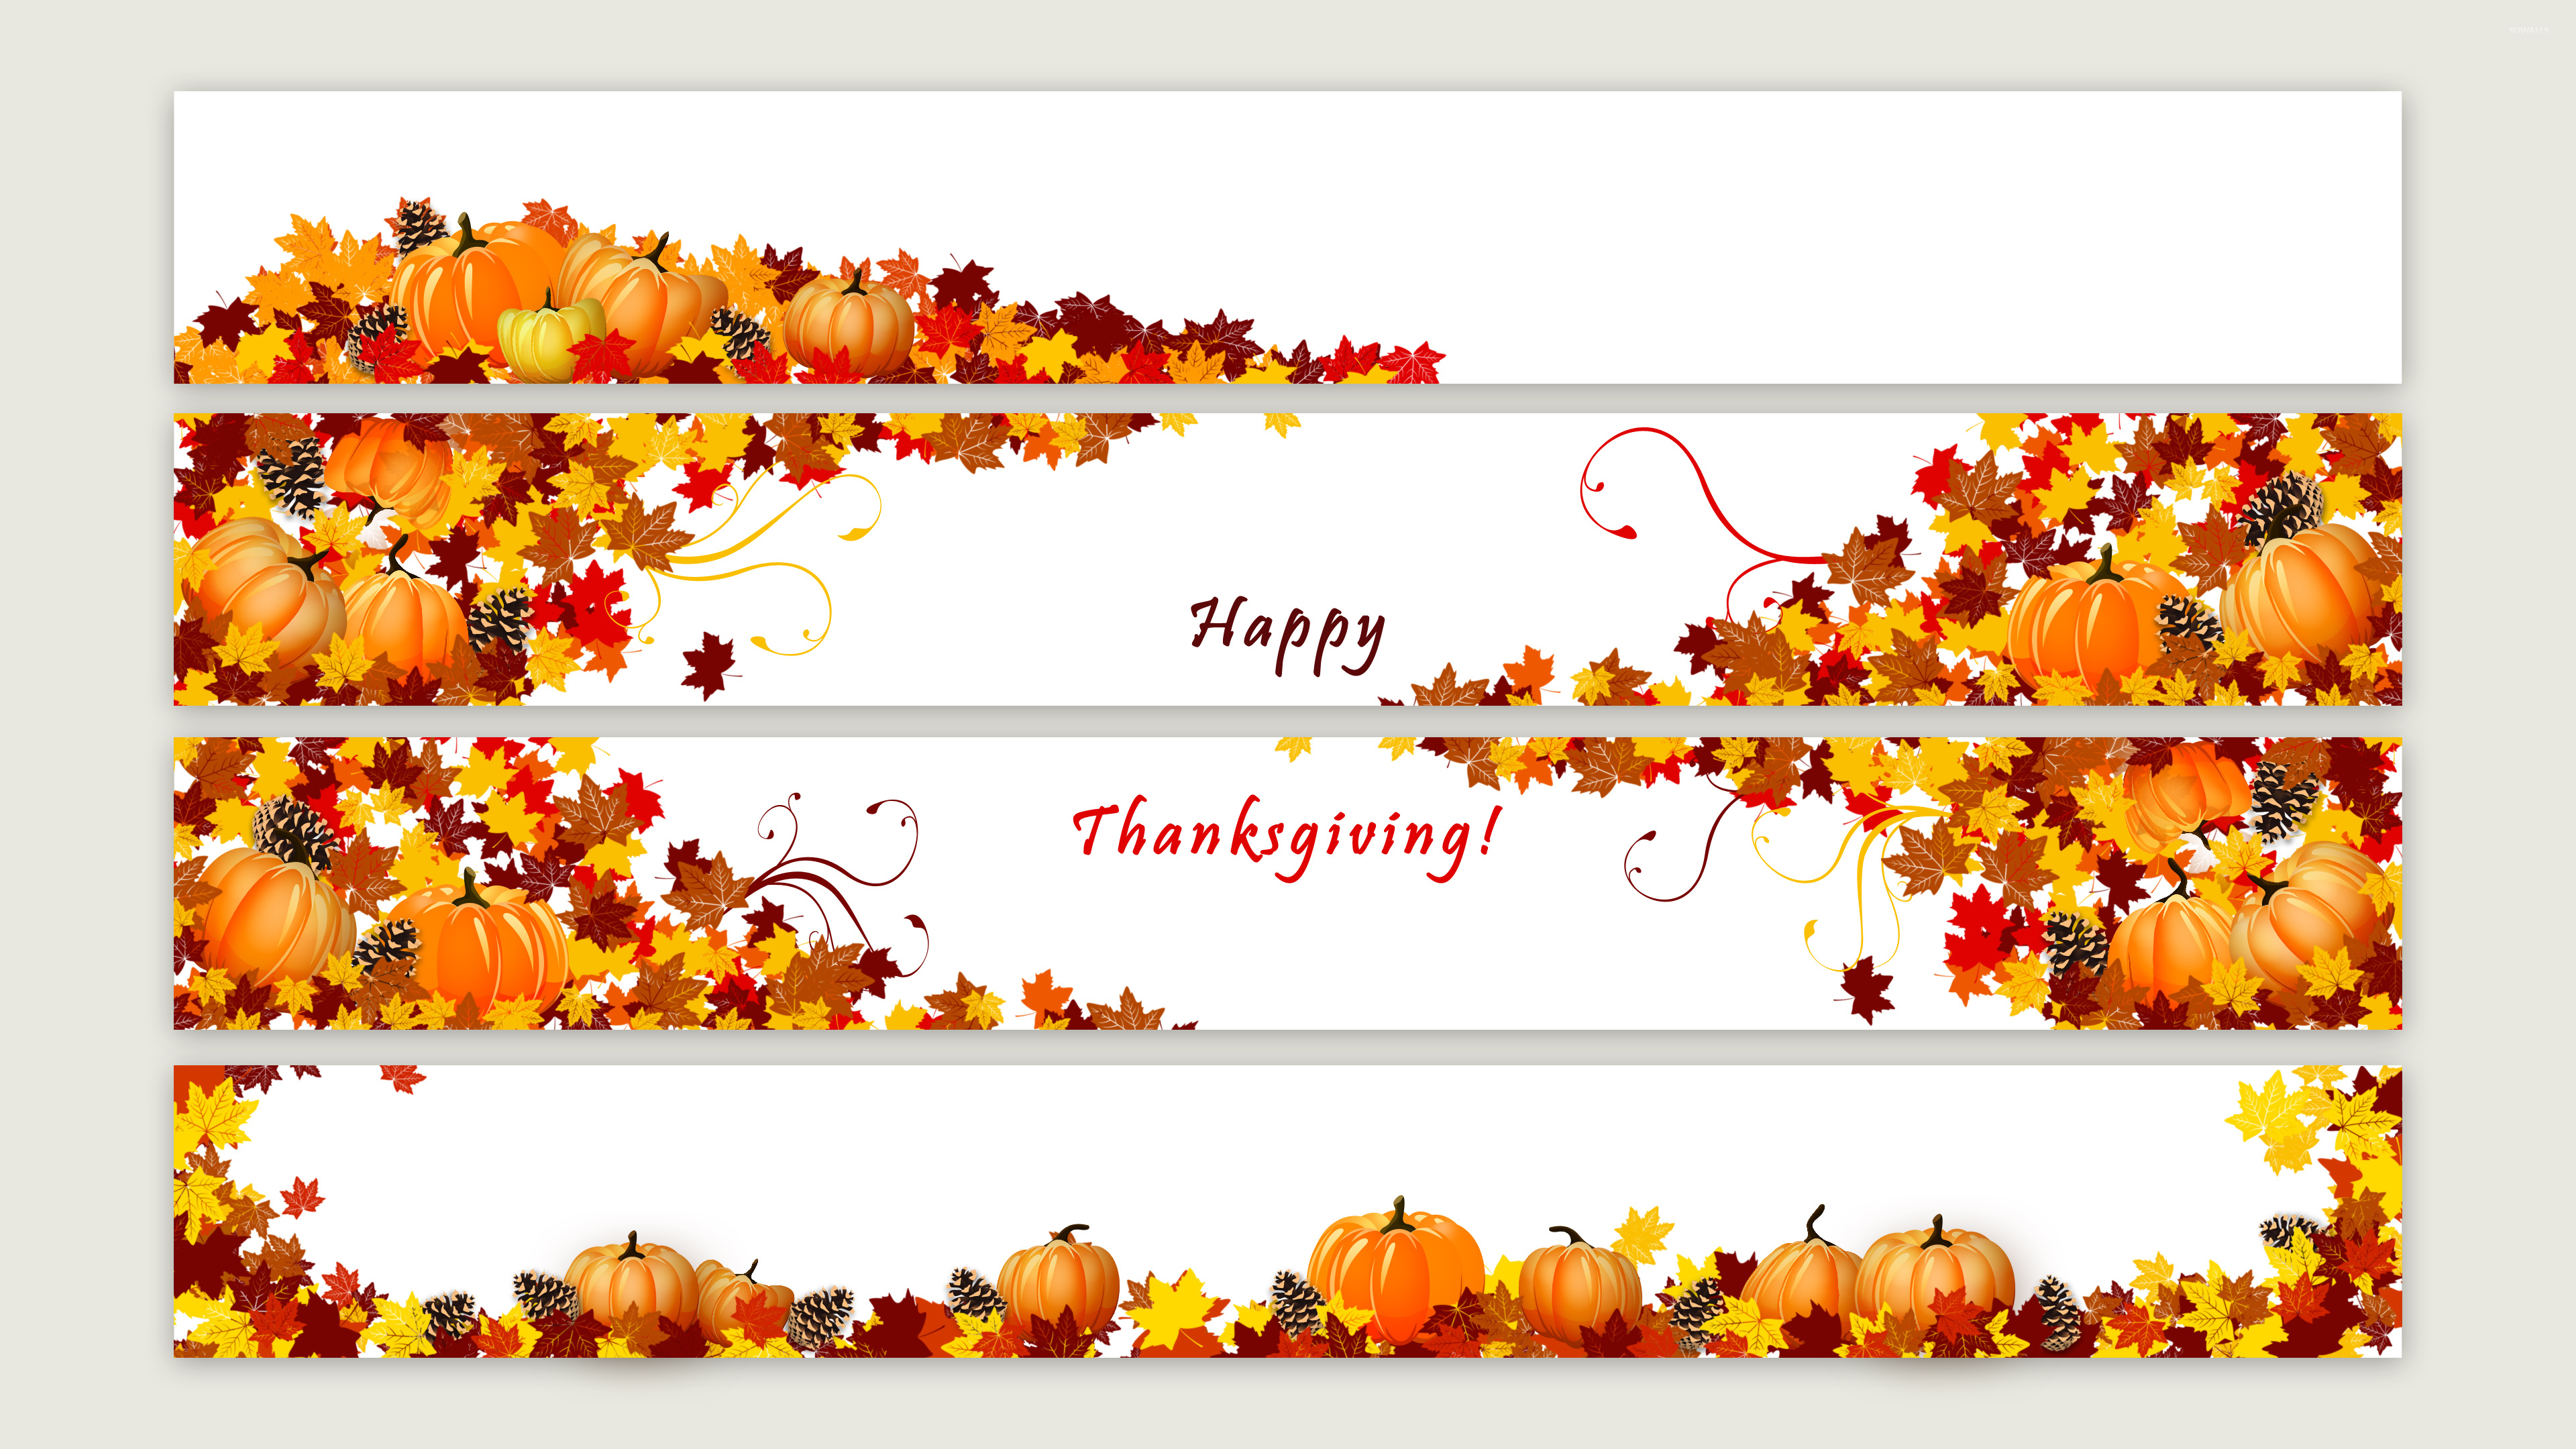 Pumpkins and cones in the autumn leaves wallpaper Holiday